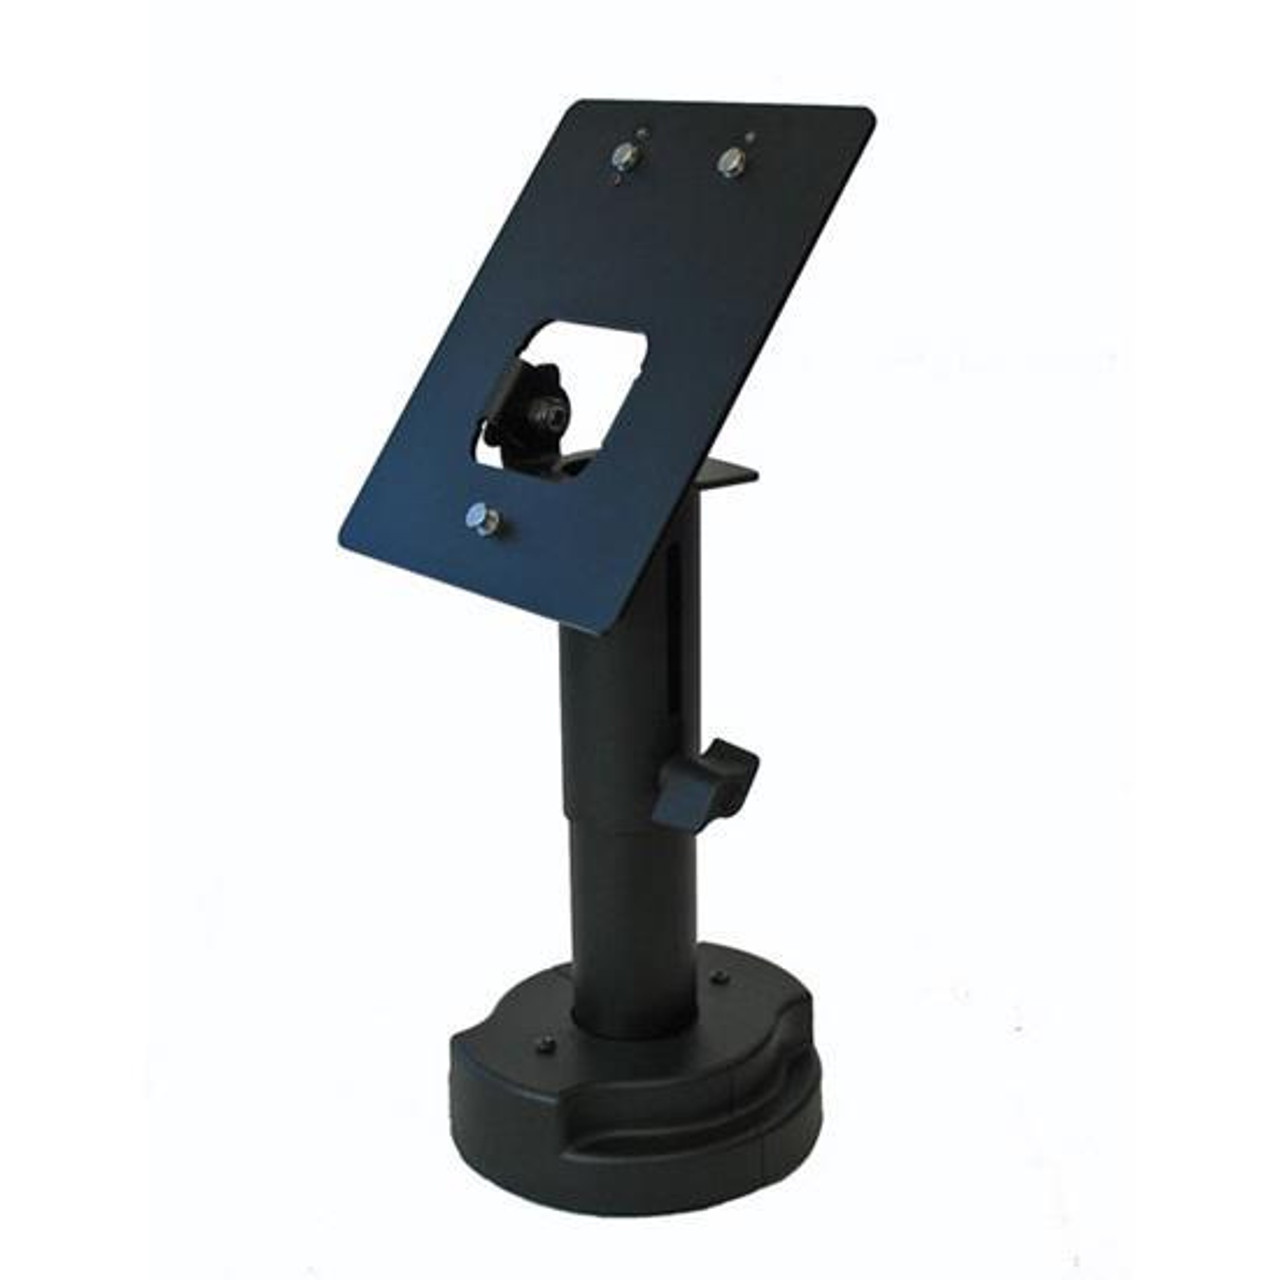 Swivel Stands Credit Card Stand Telescoping Pedestal VeriFone MX925